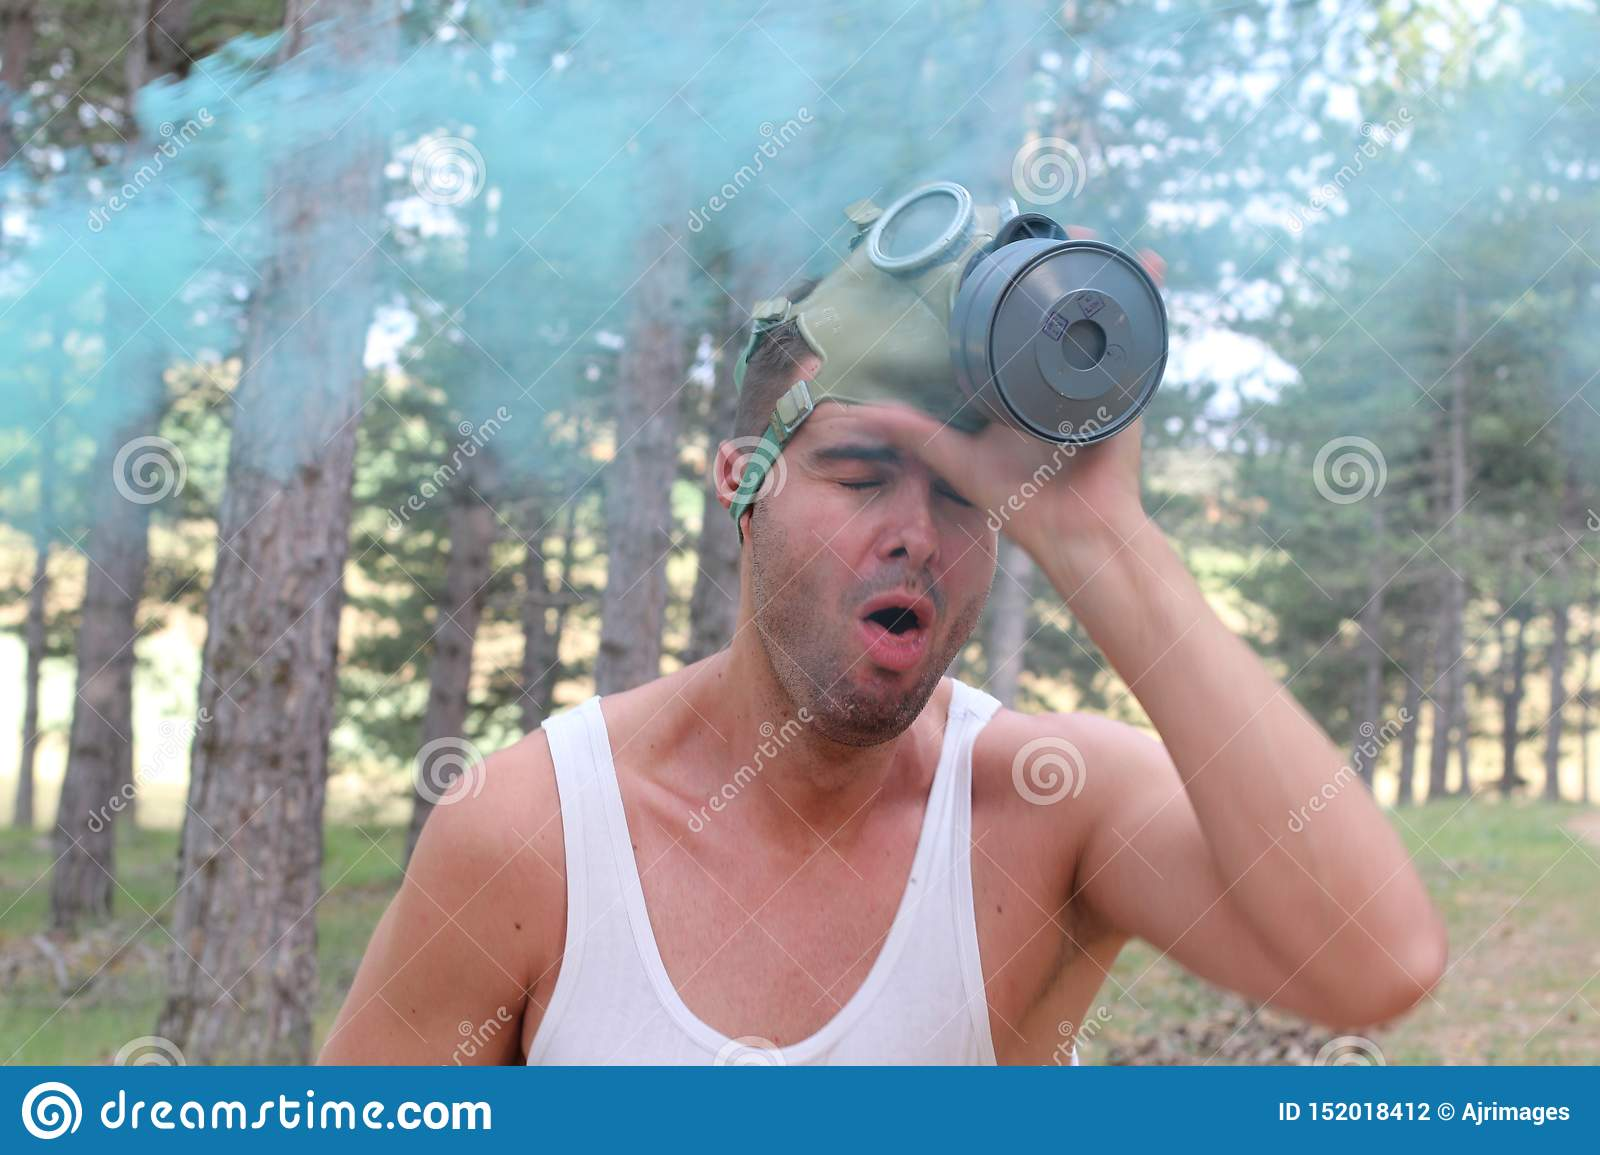 Dramatic image of man experimenting difficulties to breath